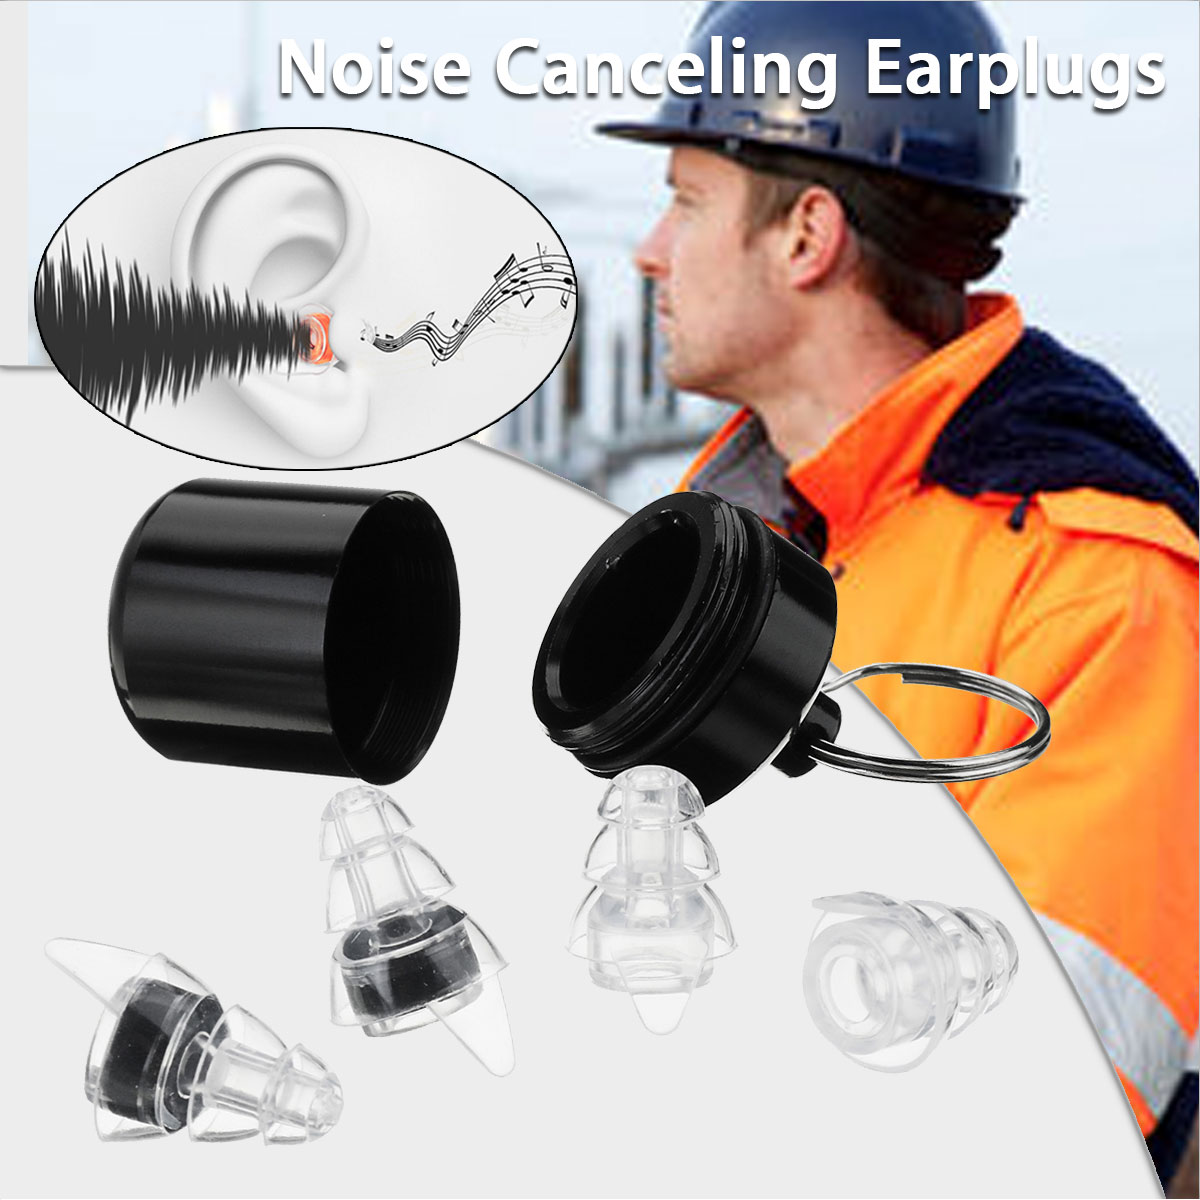 2Pairs Noise Cancelling Hearing Protection Earplugs For Concerts Musician Motorcycles Reusable Silicone Ear plugs 1 pair ear plug silicone ear plugs anti noise earplugs for sleeping ear protector motorcycle drummer musician concerts earbuds